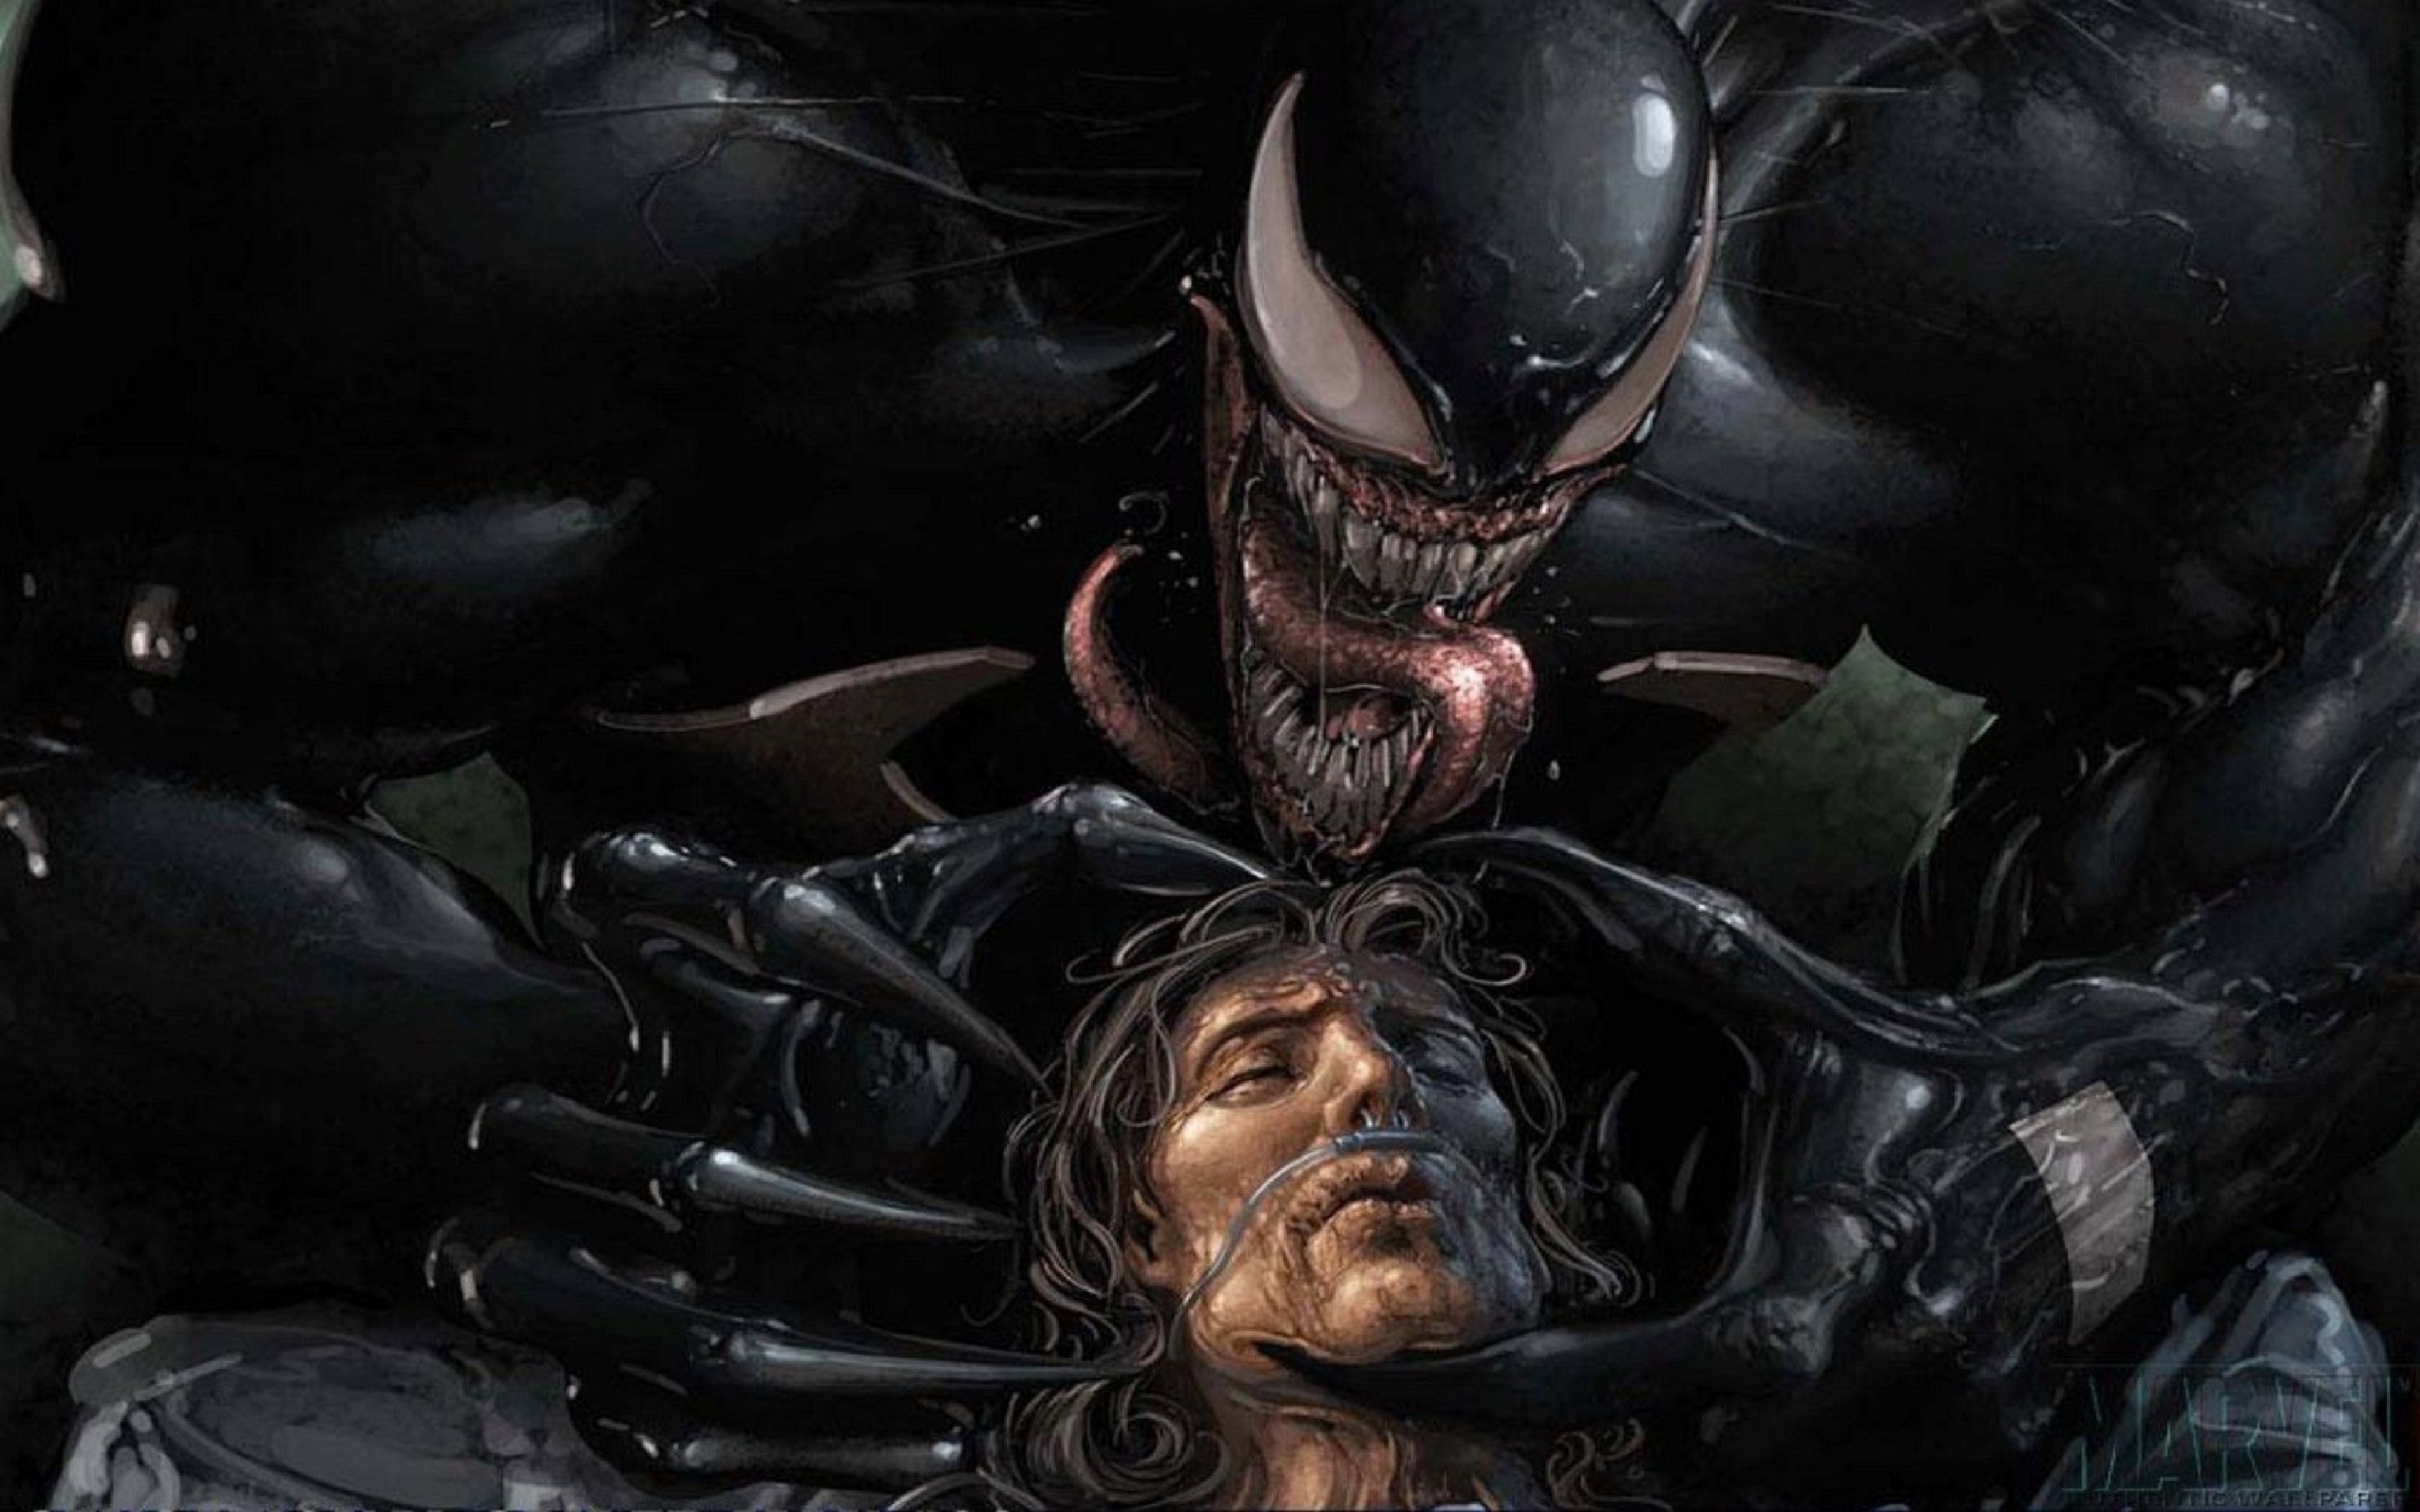 Cool House Plans Reviews >> Sony Plans Venom R-Rated Sci-Fi Horror Movie